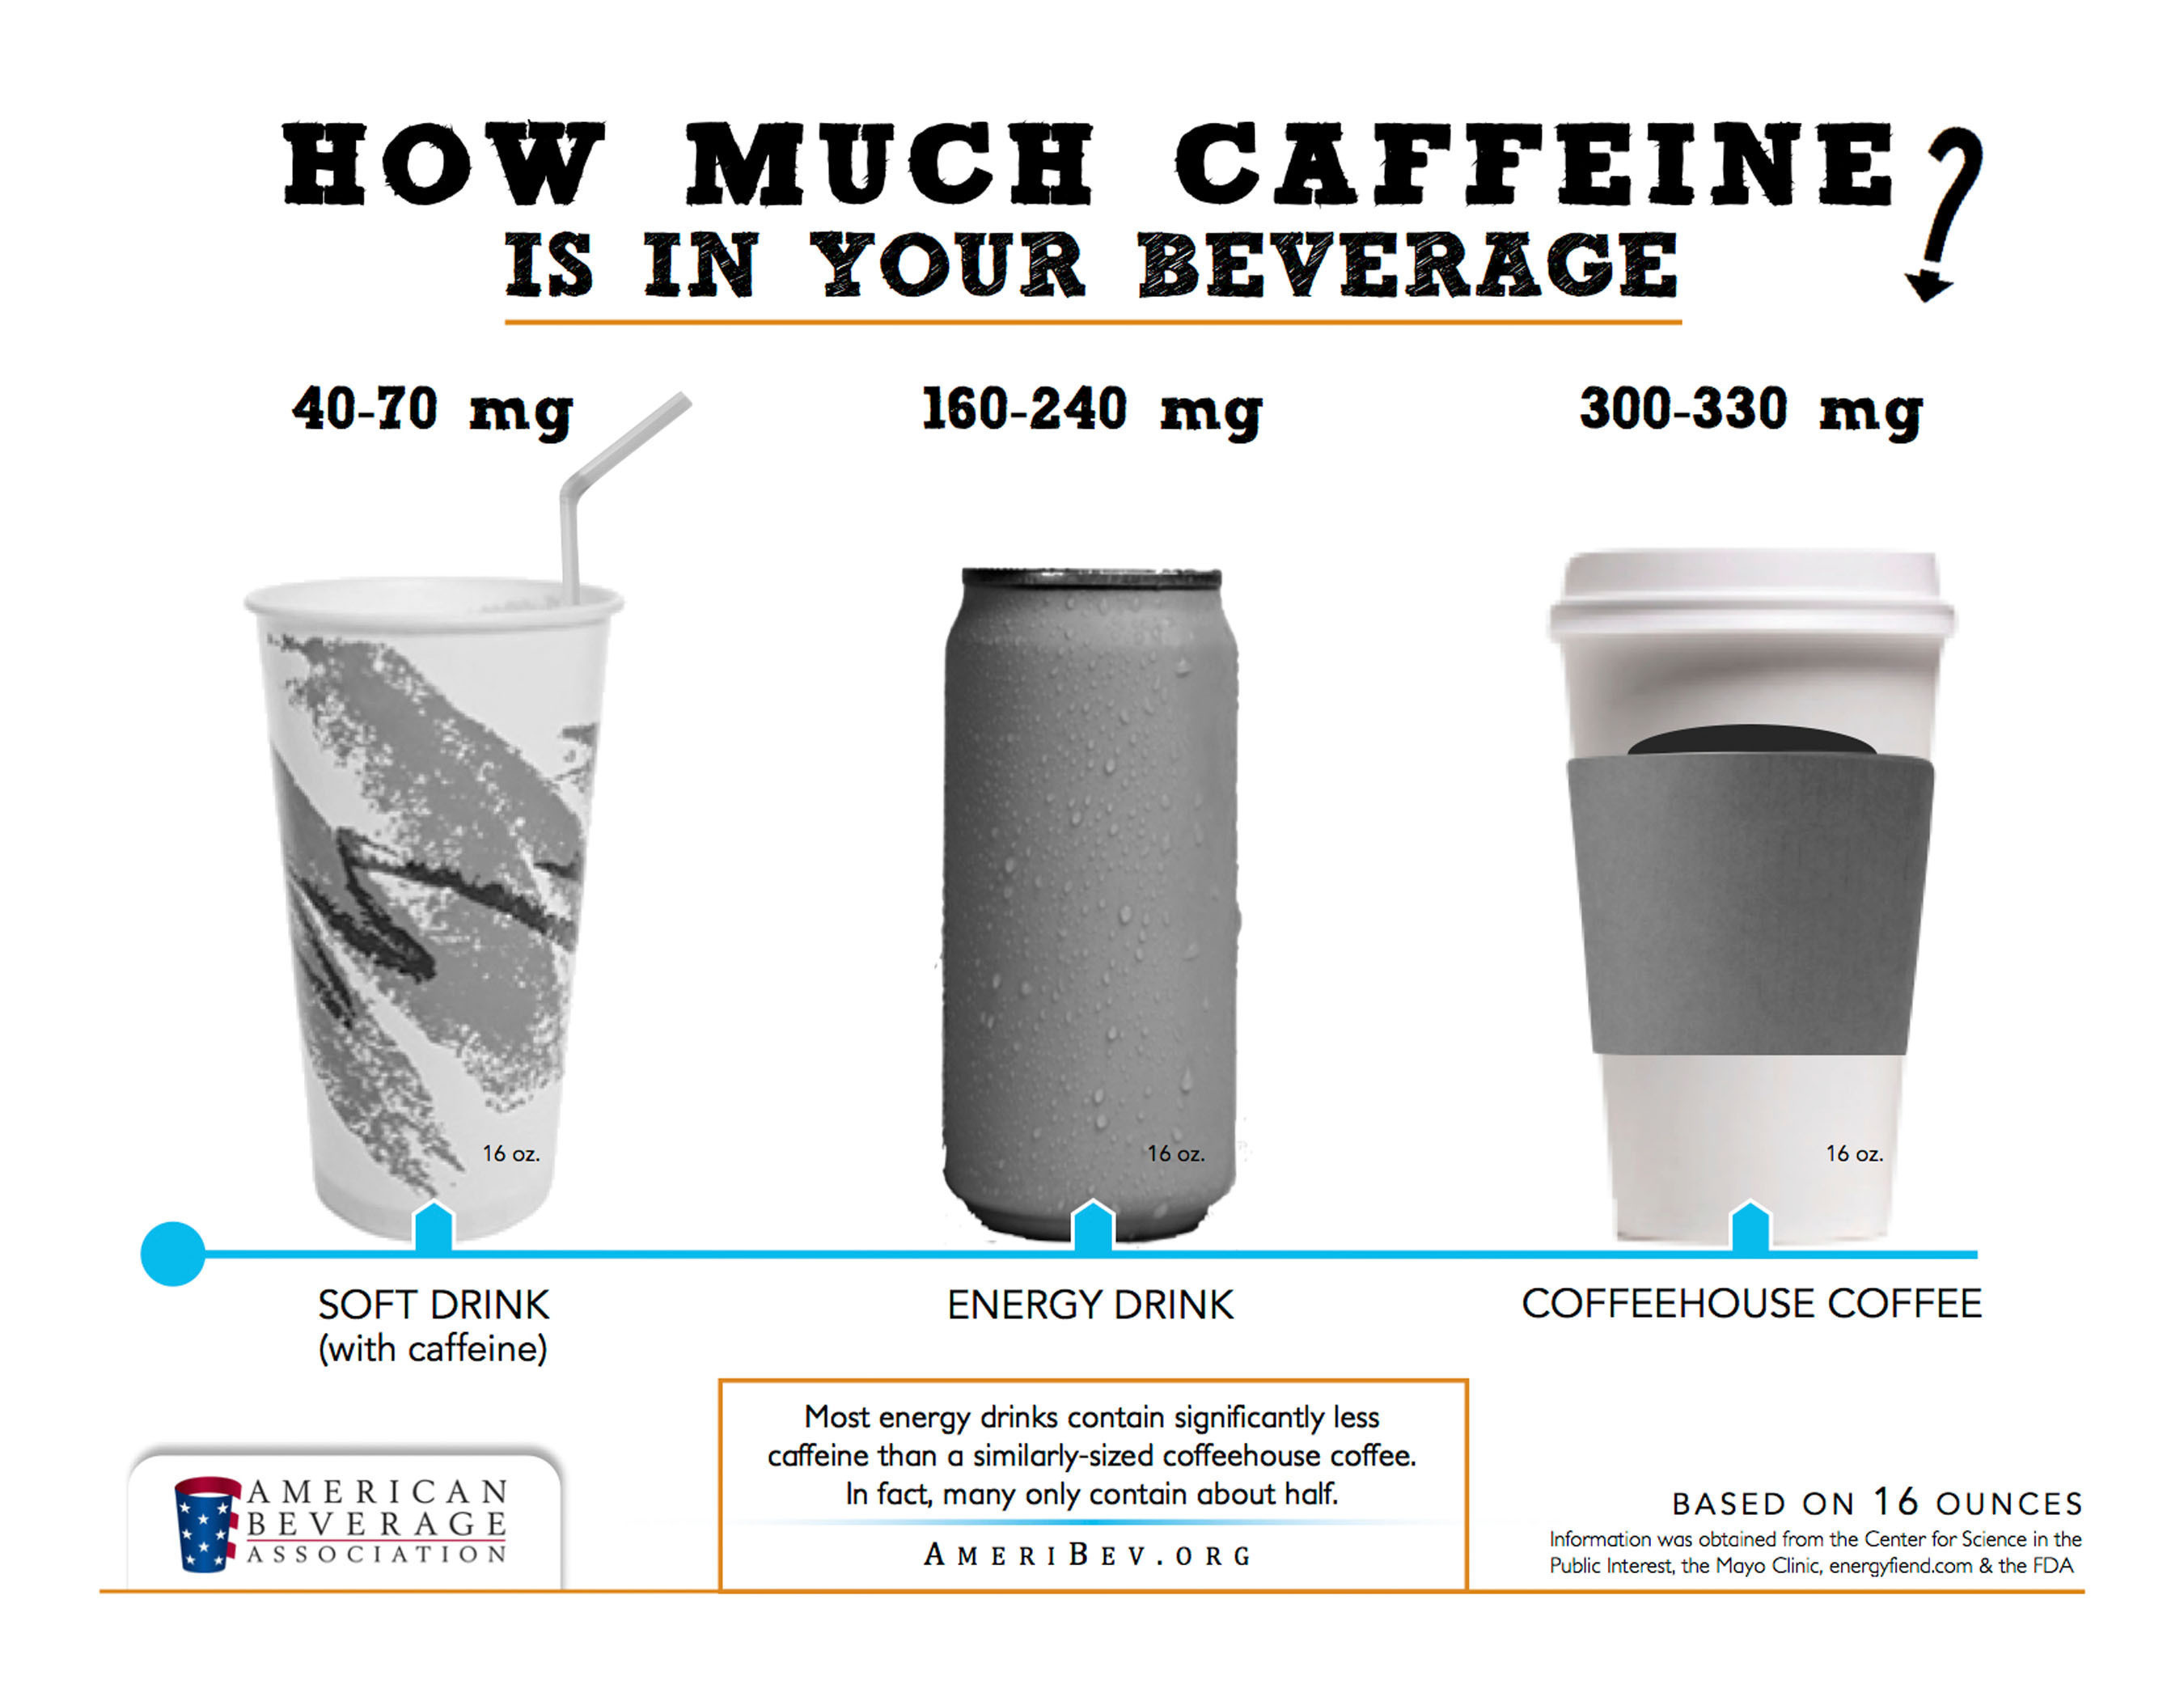 FACT: Energy Drinks Contain About Half The Caffeine Of Similarly-Sized Coffeehouse Coffee